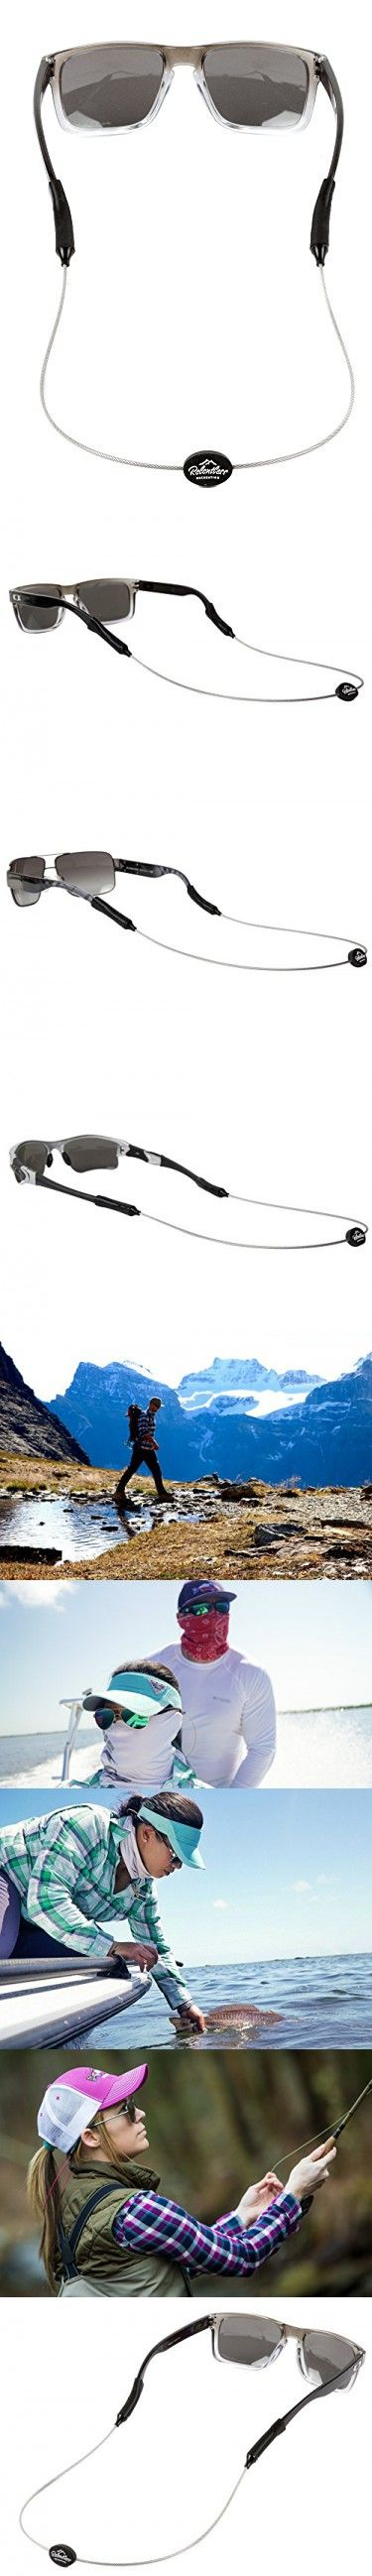 Rec-Strapz Sunglasses / Eyewear Retainer System for Active Lifestyles - Made in USA - Patent Pending Design  Universal fit for any Eye Glasses / Sunglasses - Silver Standard